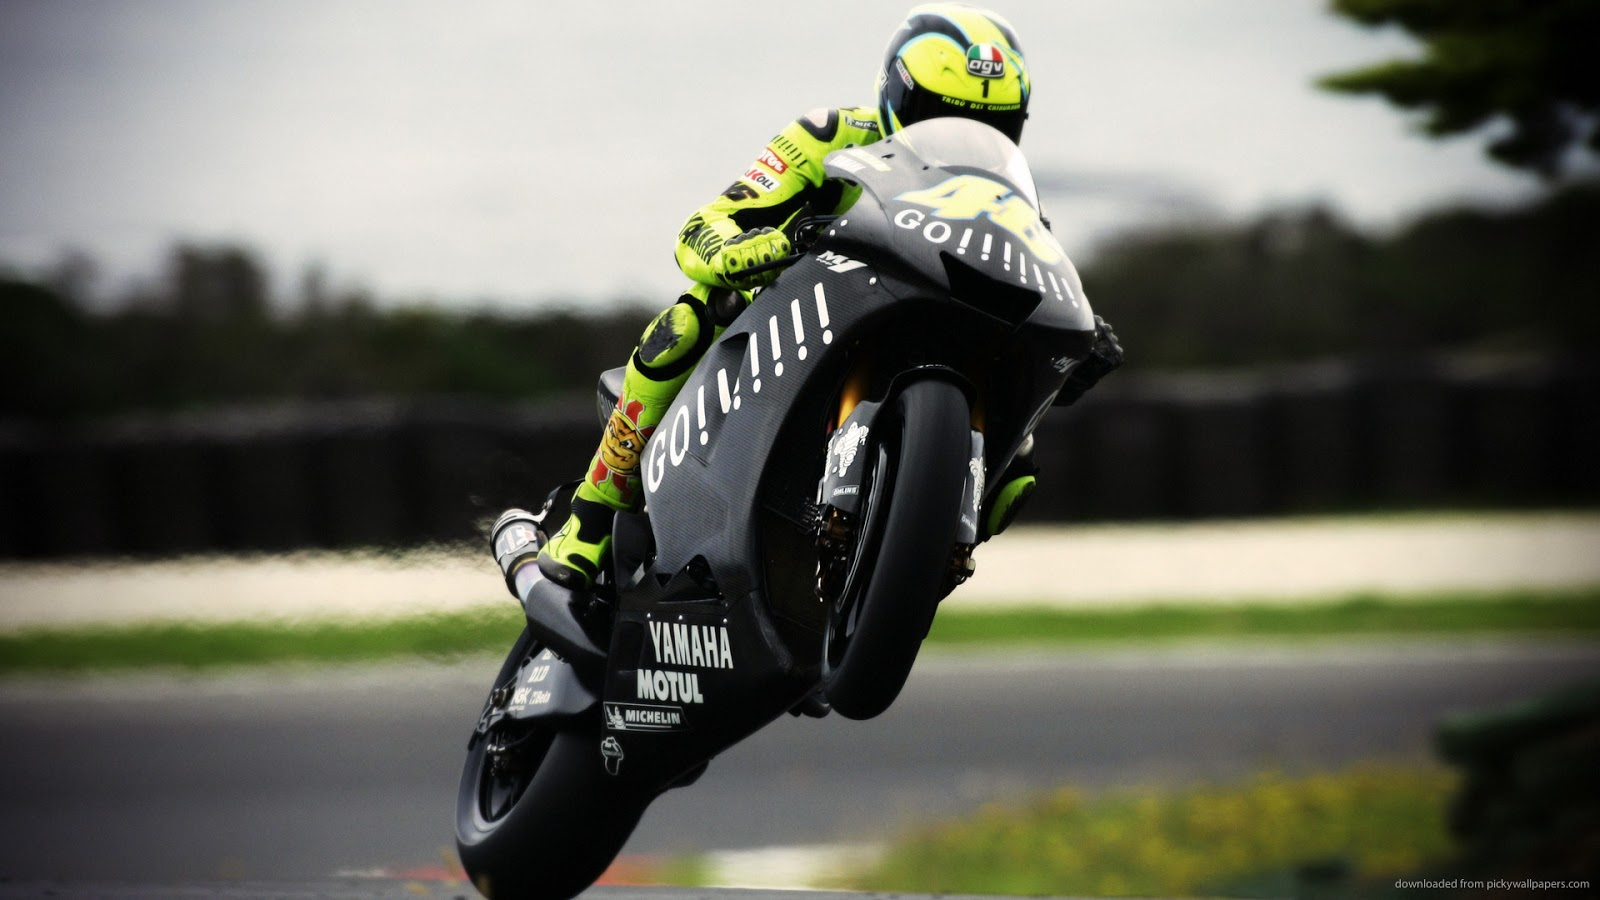 Wallpaper iphone valentino rossi - Hd Wallpaper Valentino Rossi Super Keren Pc Dan Smartphone Iphone Dibingkai Com